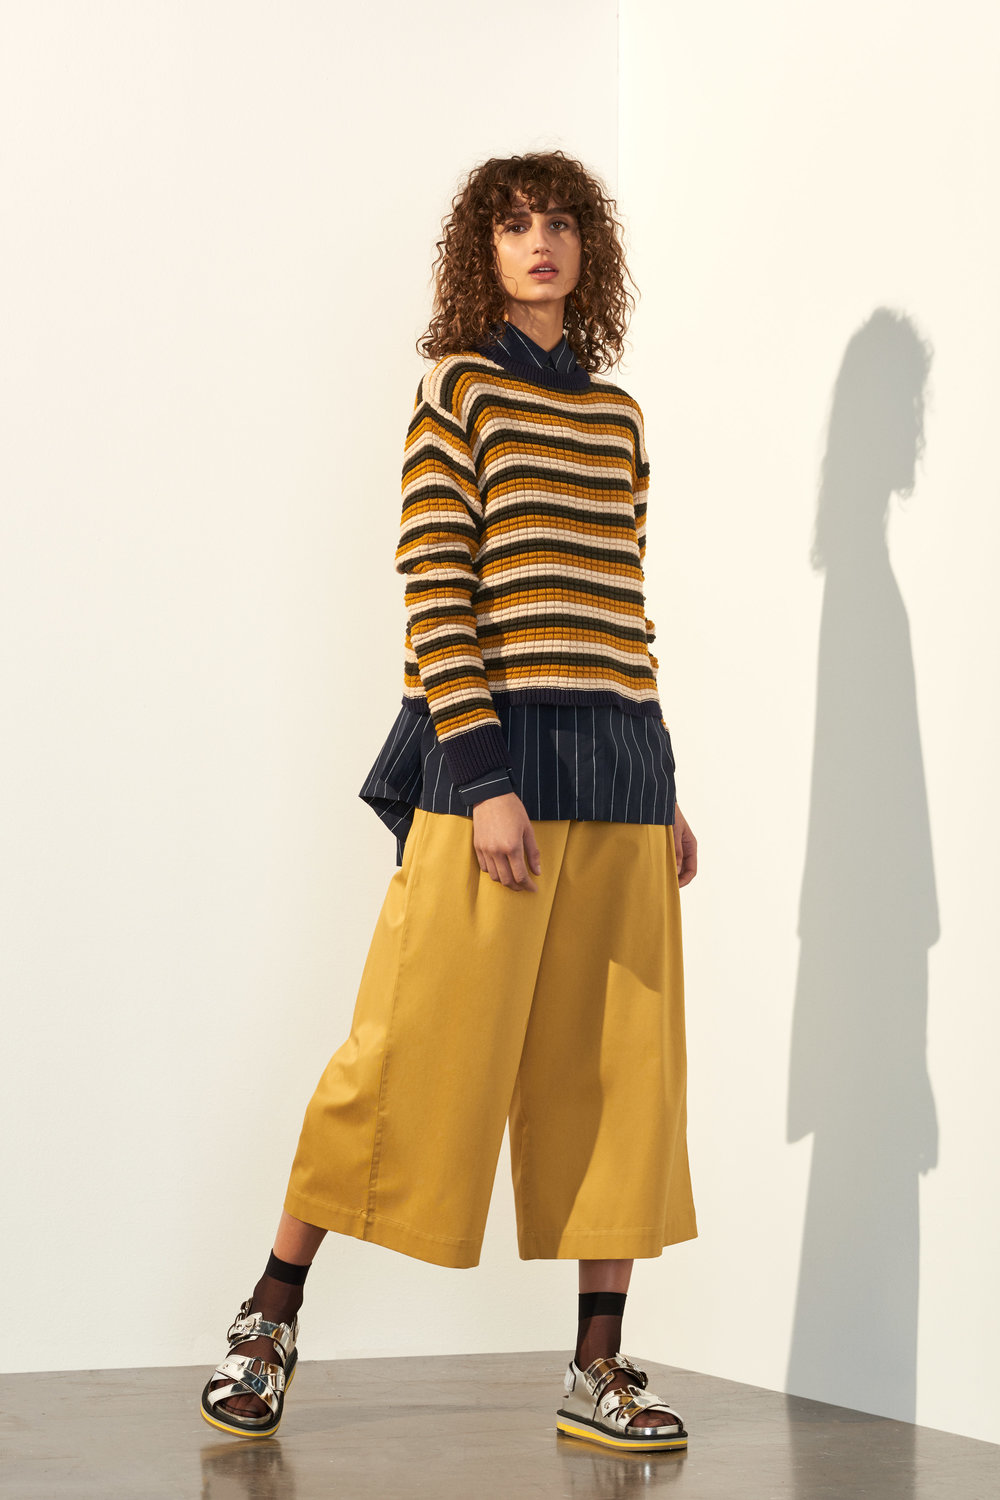 Kowtow AW18 collection, 'In Theory.' Image supplied.